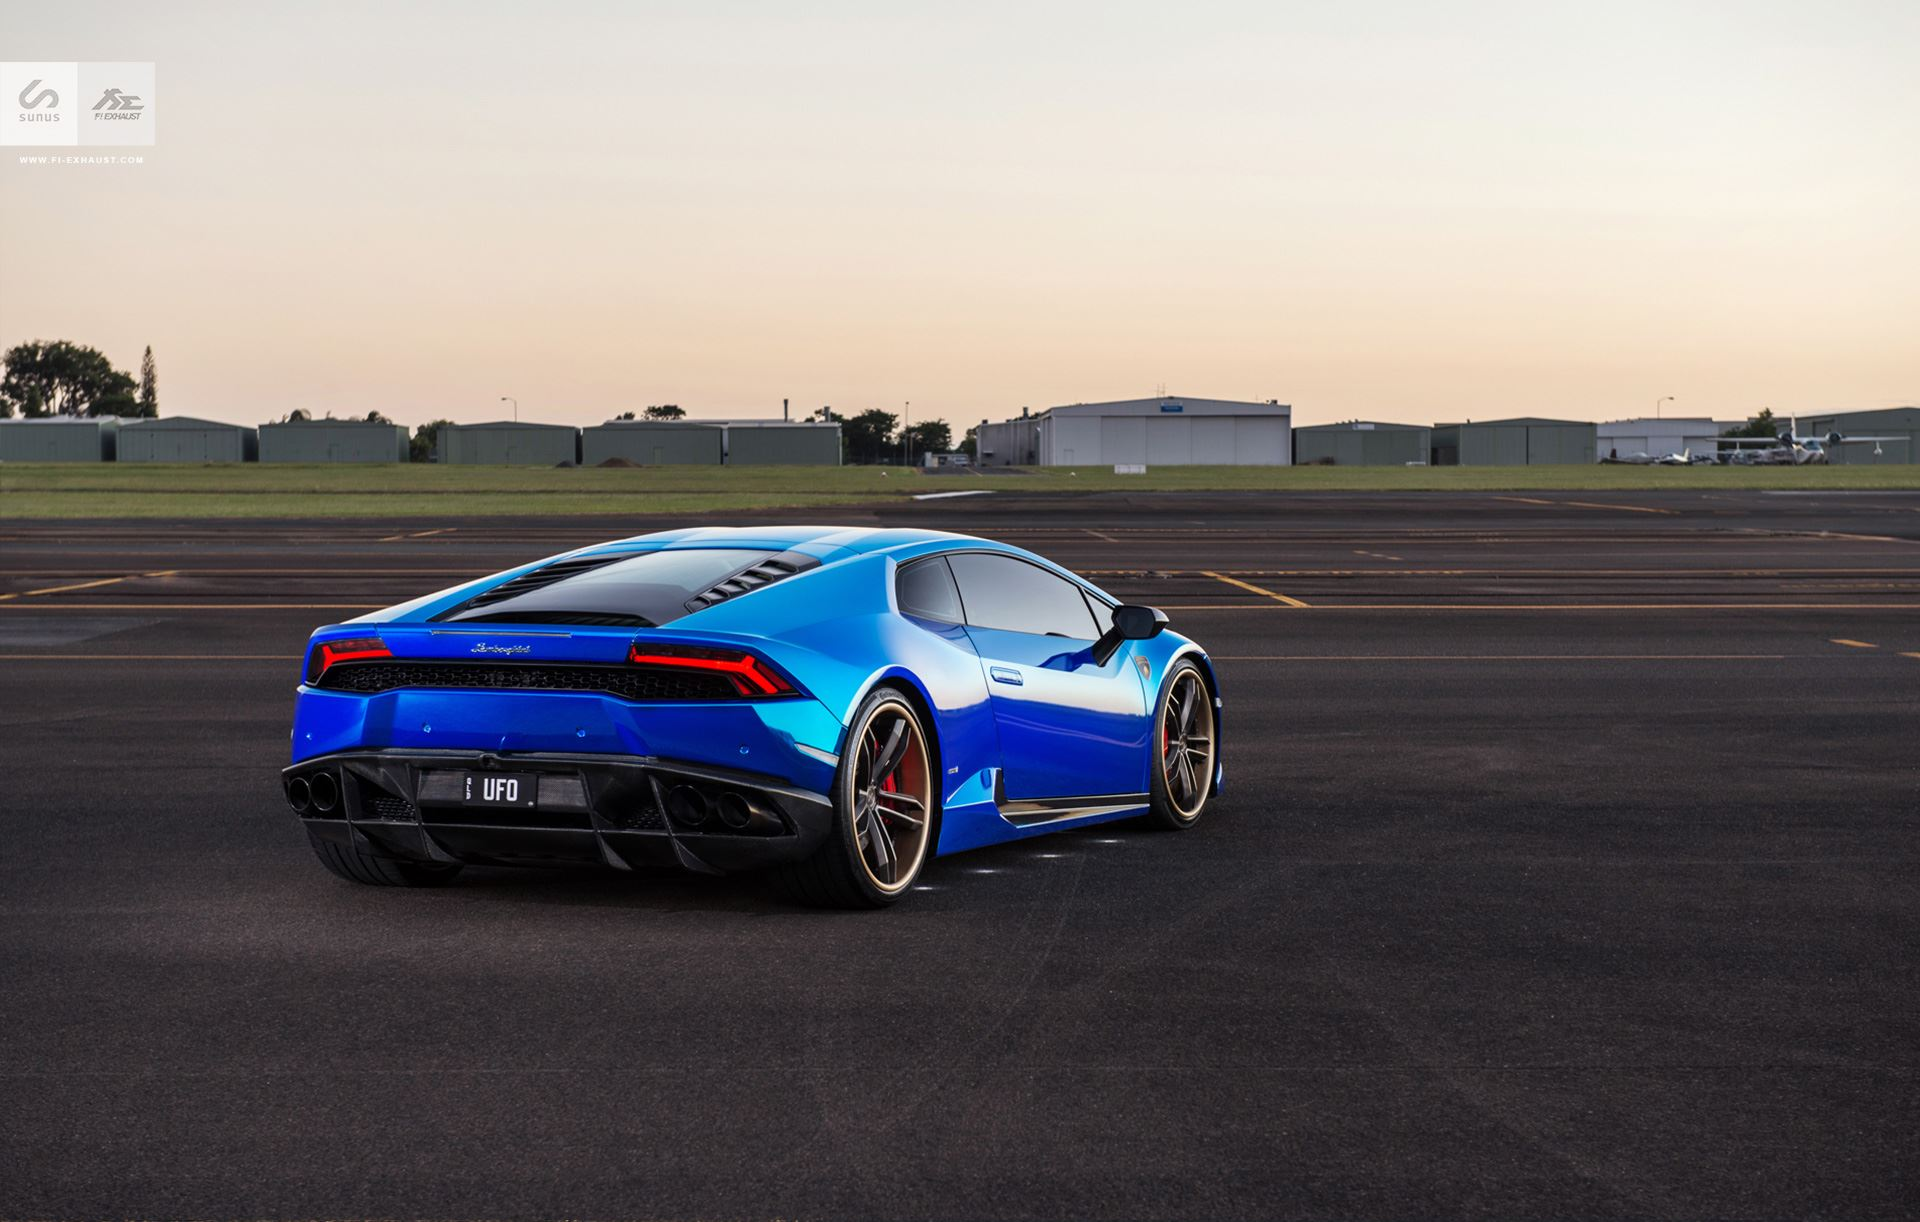 Stunning Blue Chrome Lamborghini Huracan By Sunus Motorsport Gtspirit